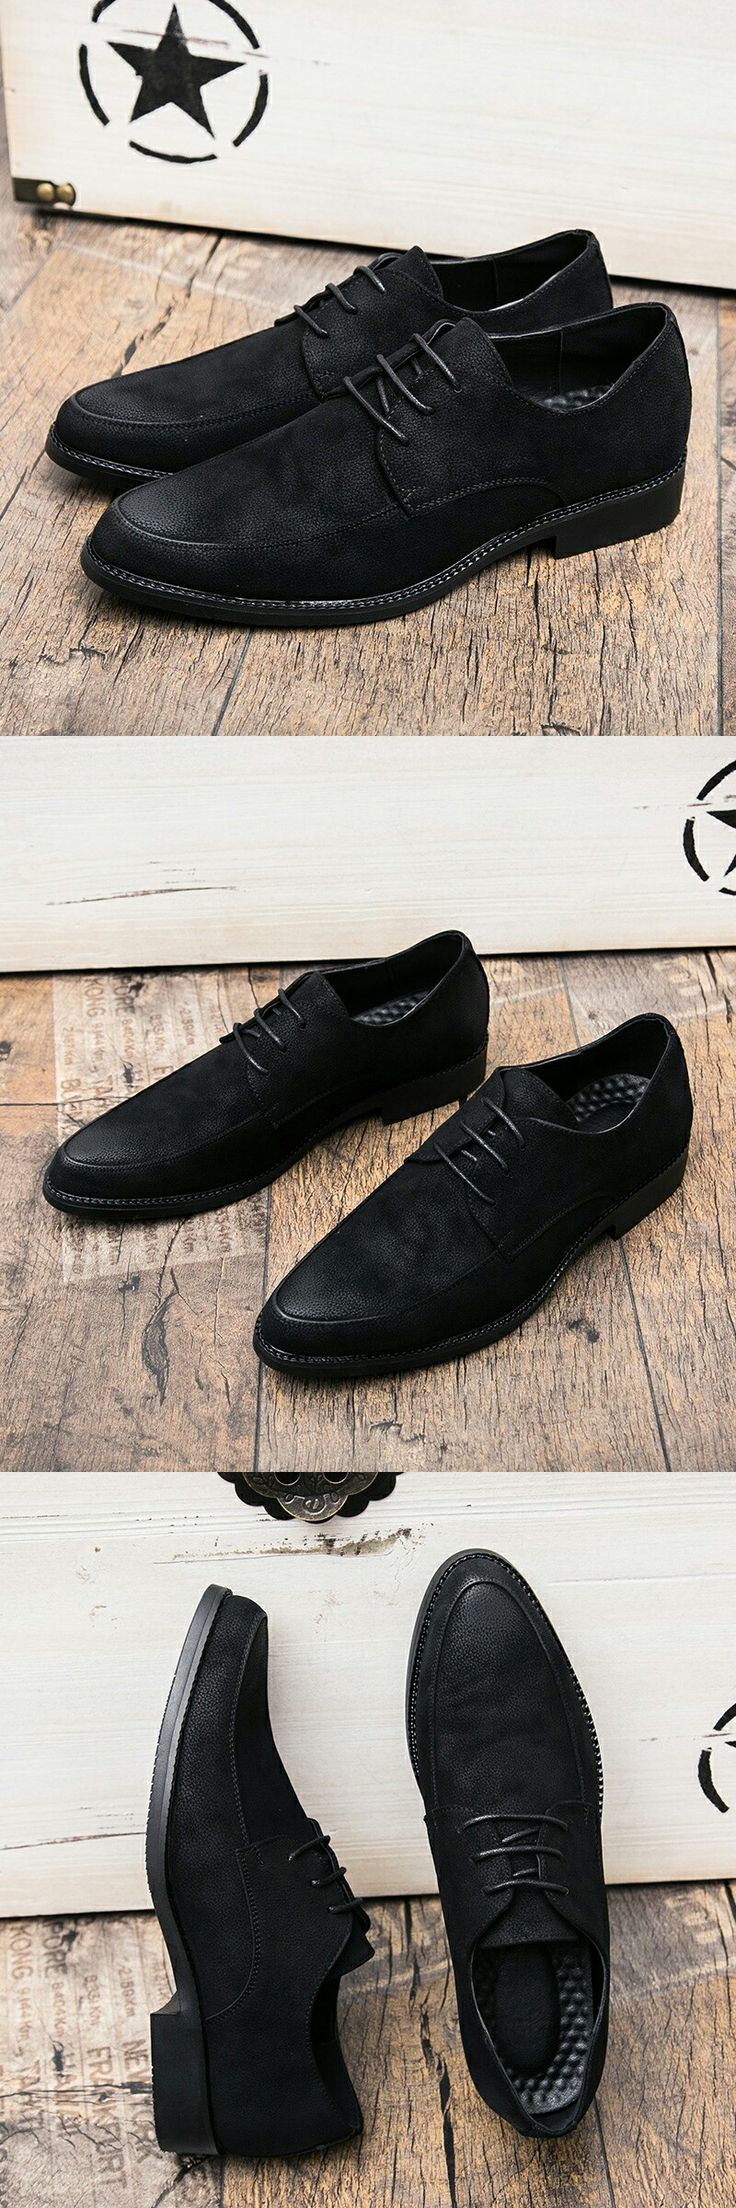 US $26.2<Click to buy> Prelesty New Leather Men Business Dress Loafers Black Shoes Oxford